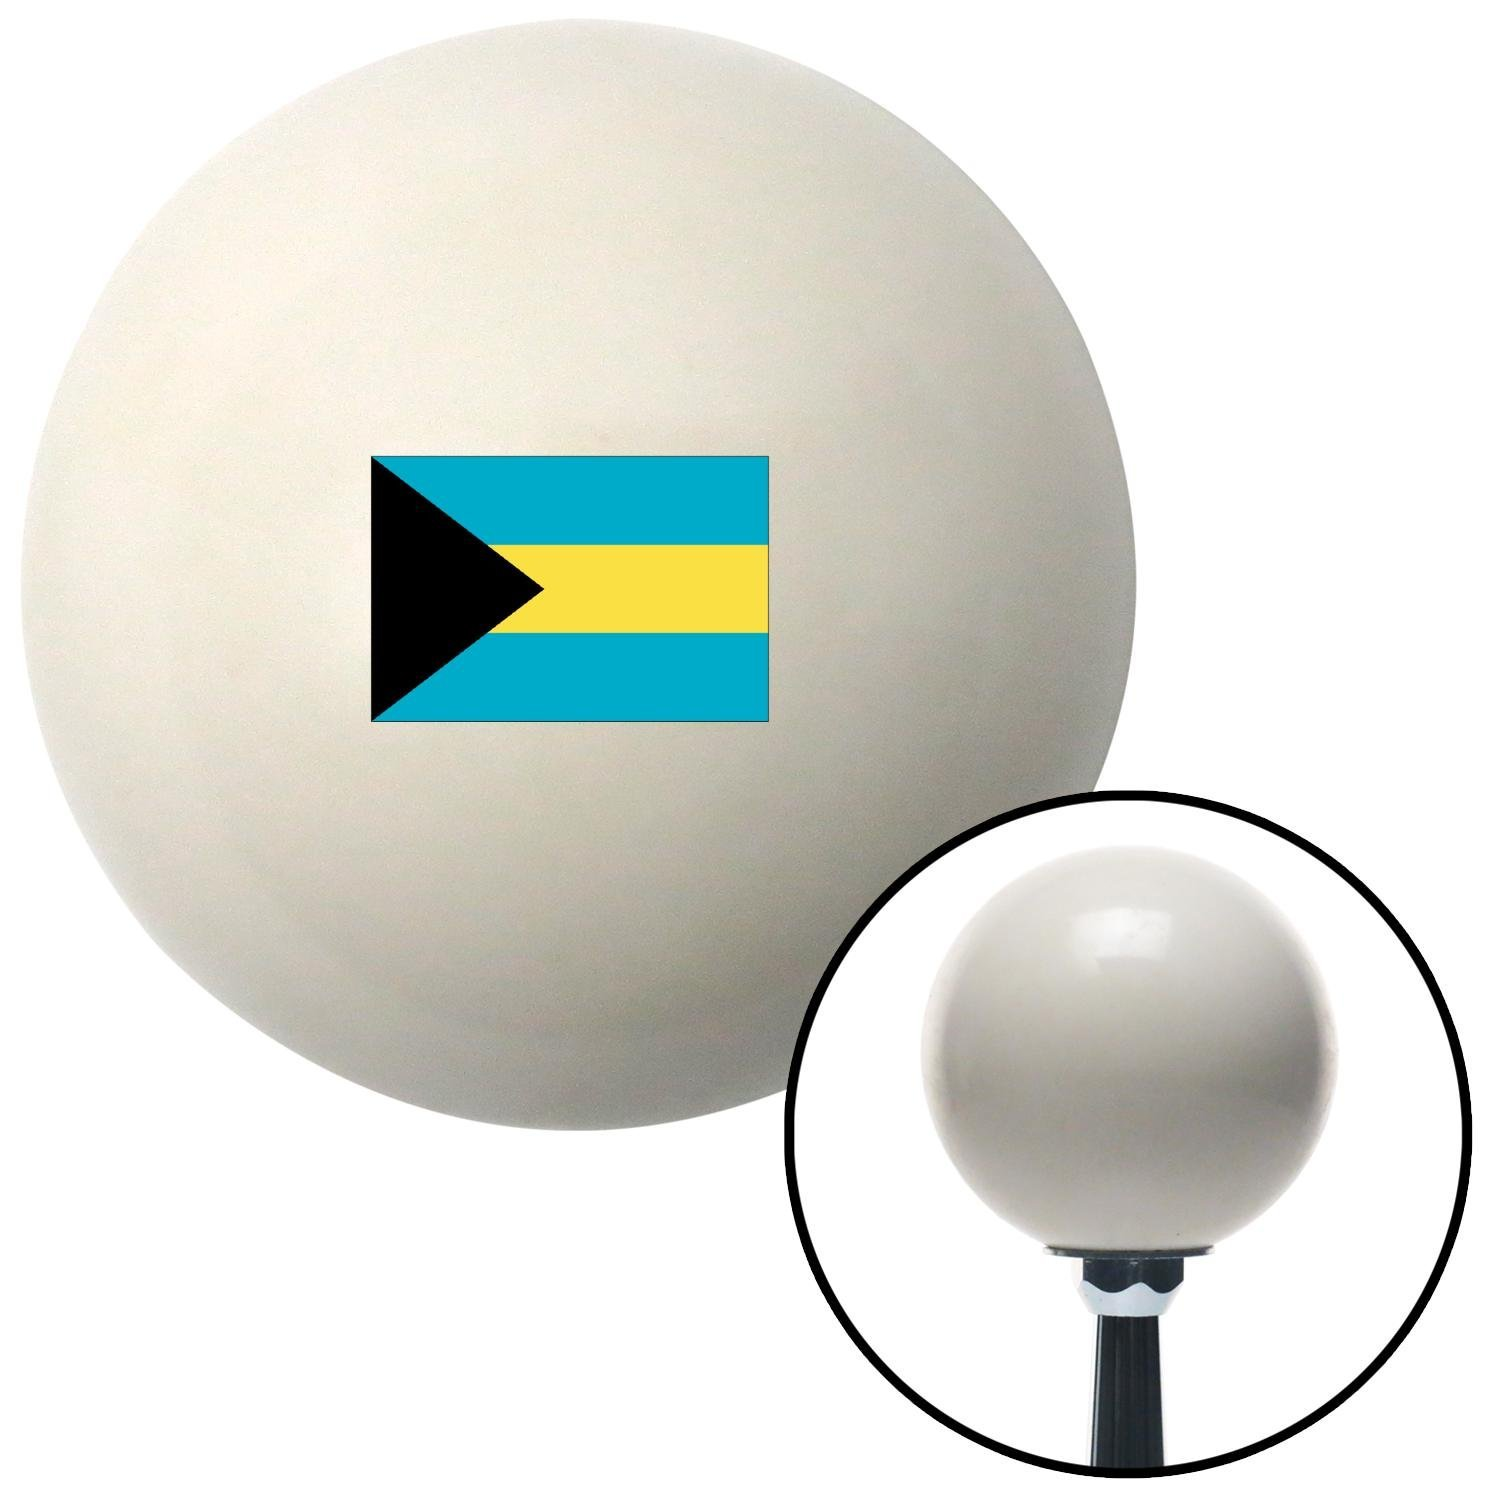 ASCSNX1624553 The Bahamas Ivory with M16 x 1.5 Insert American Shifter 303926 Shift Knob